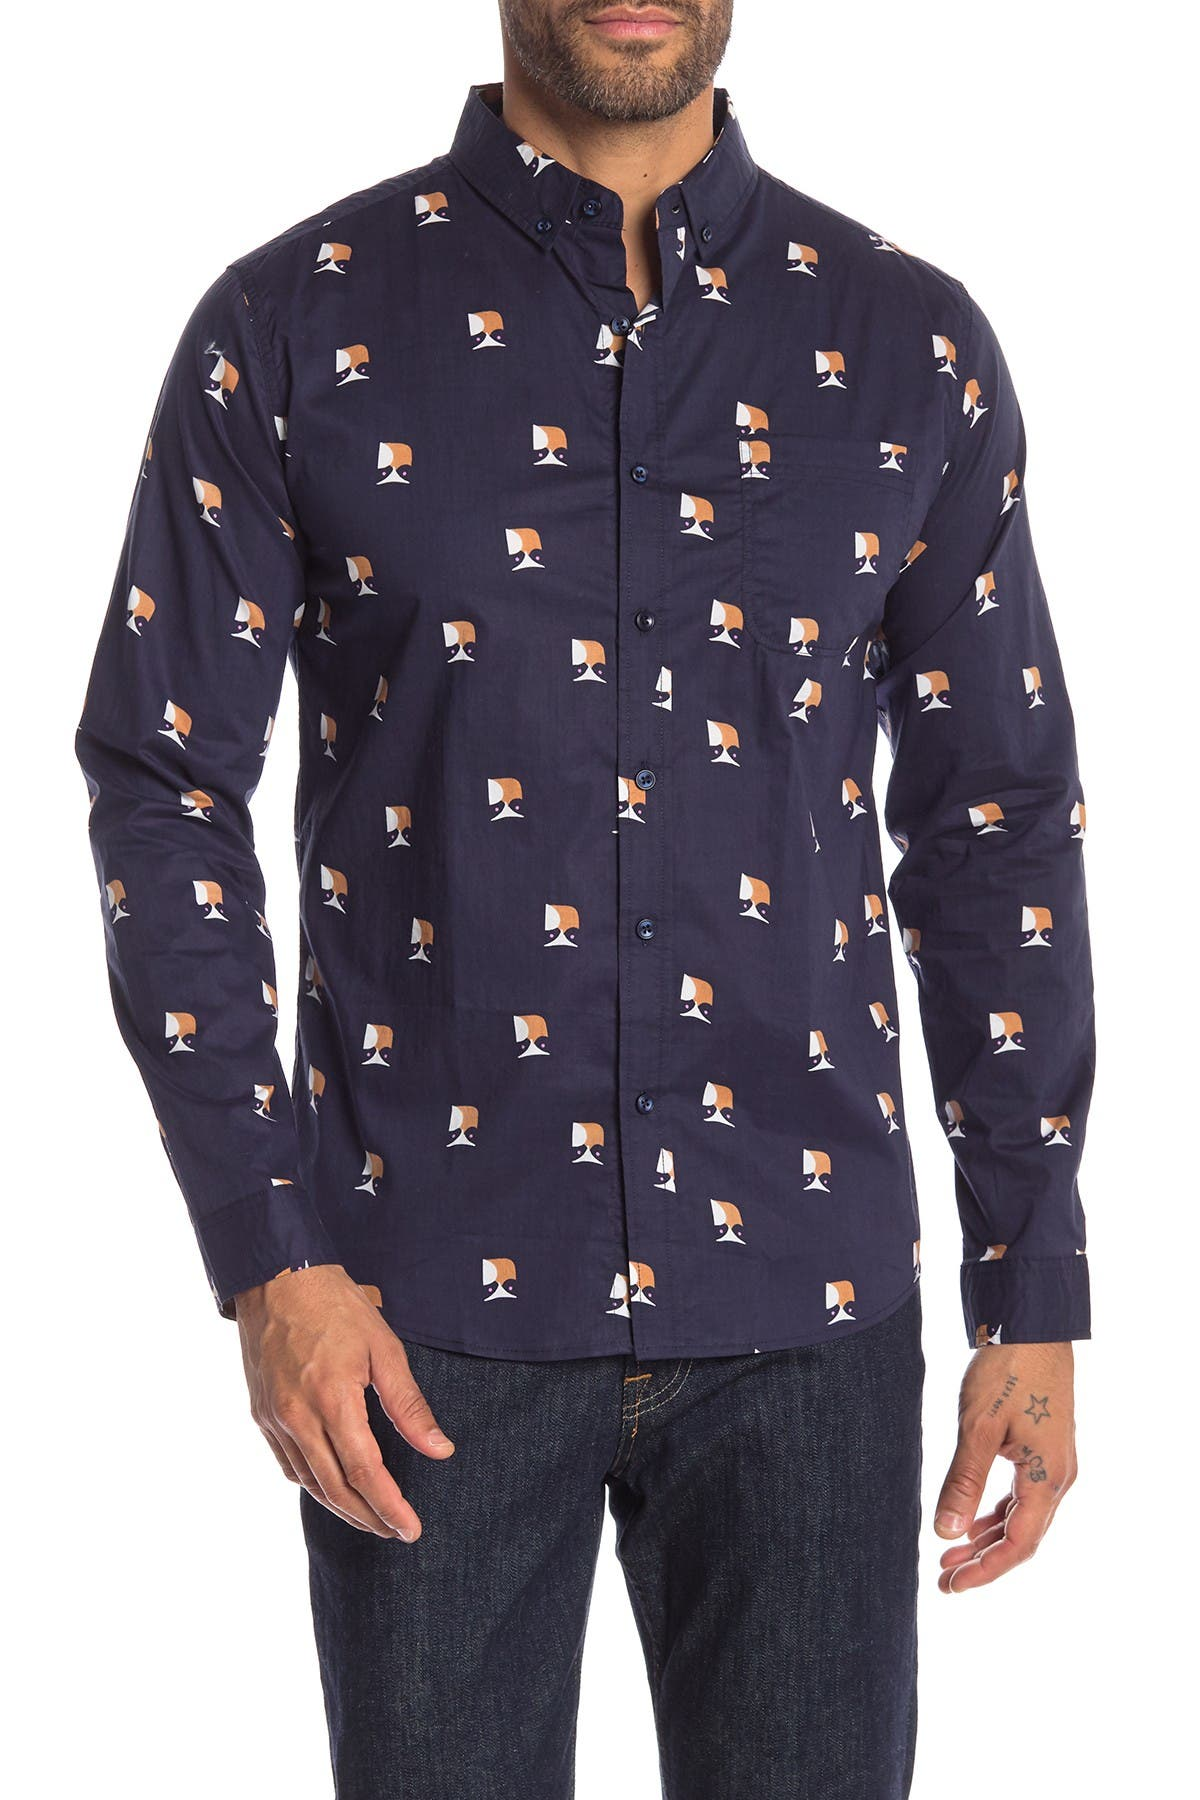 Image of Loft 604 Owl Print Regular Fit Shirt